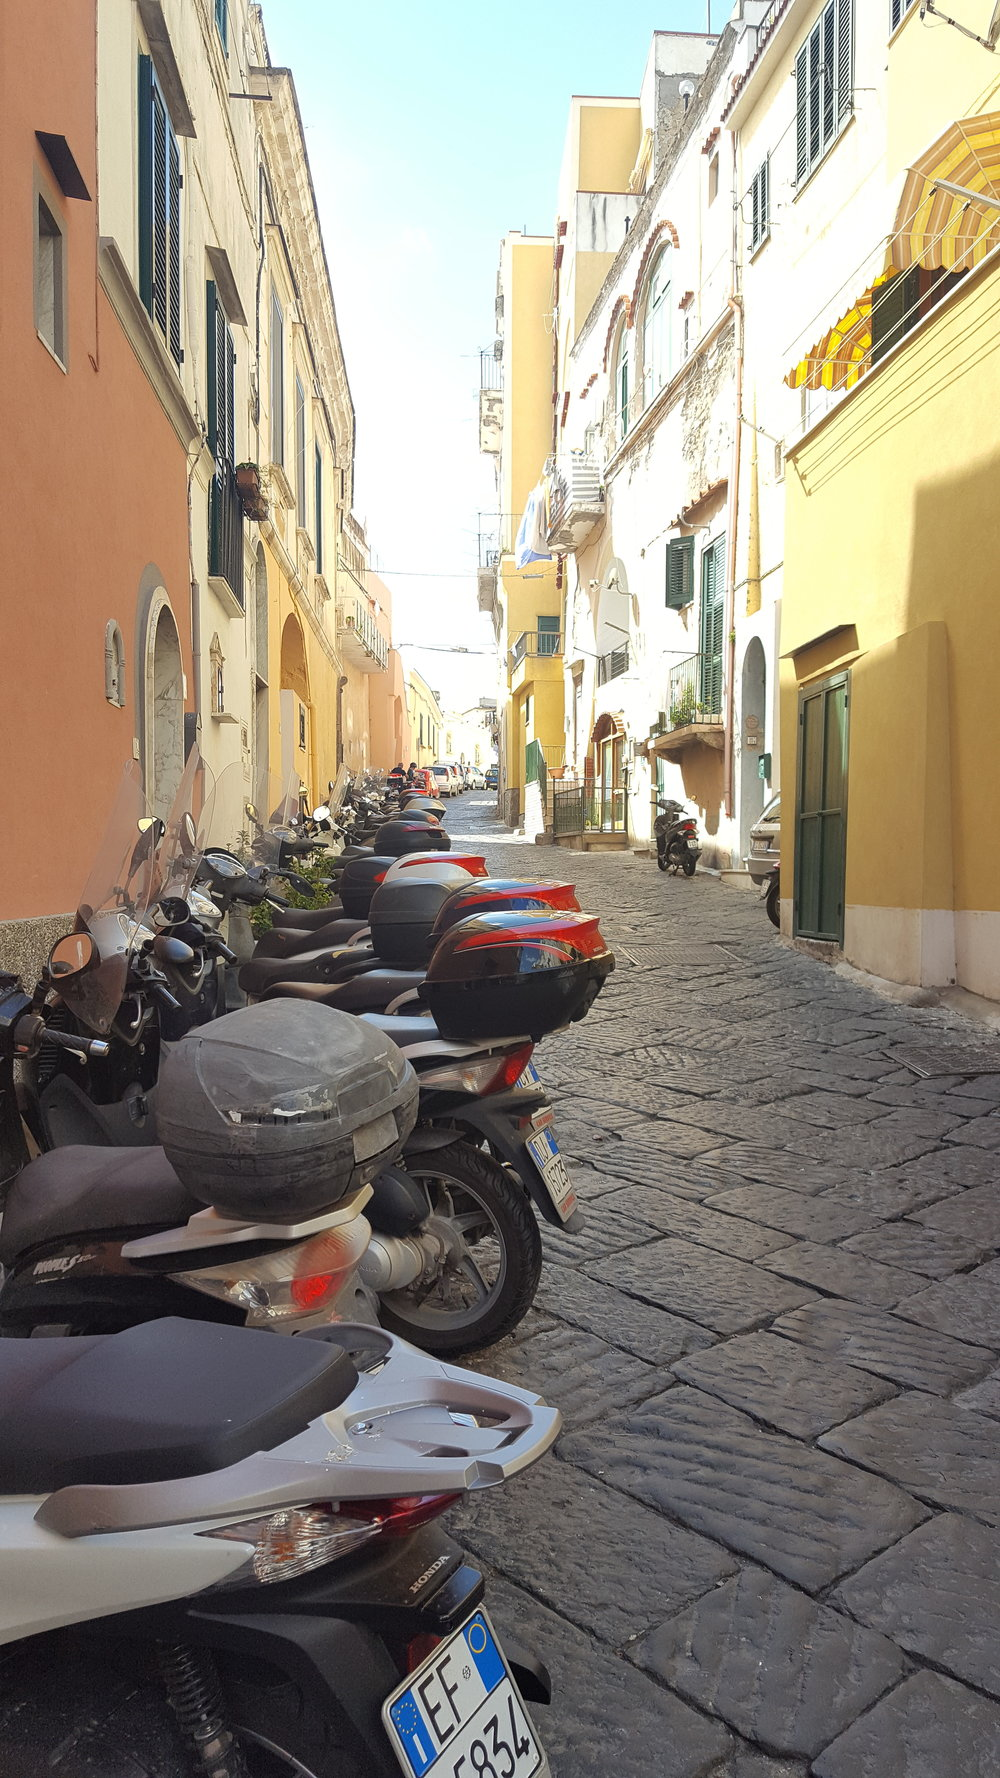 A typical street in Procida - packed with scooters.